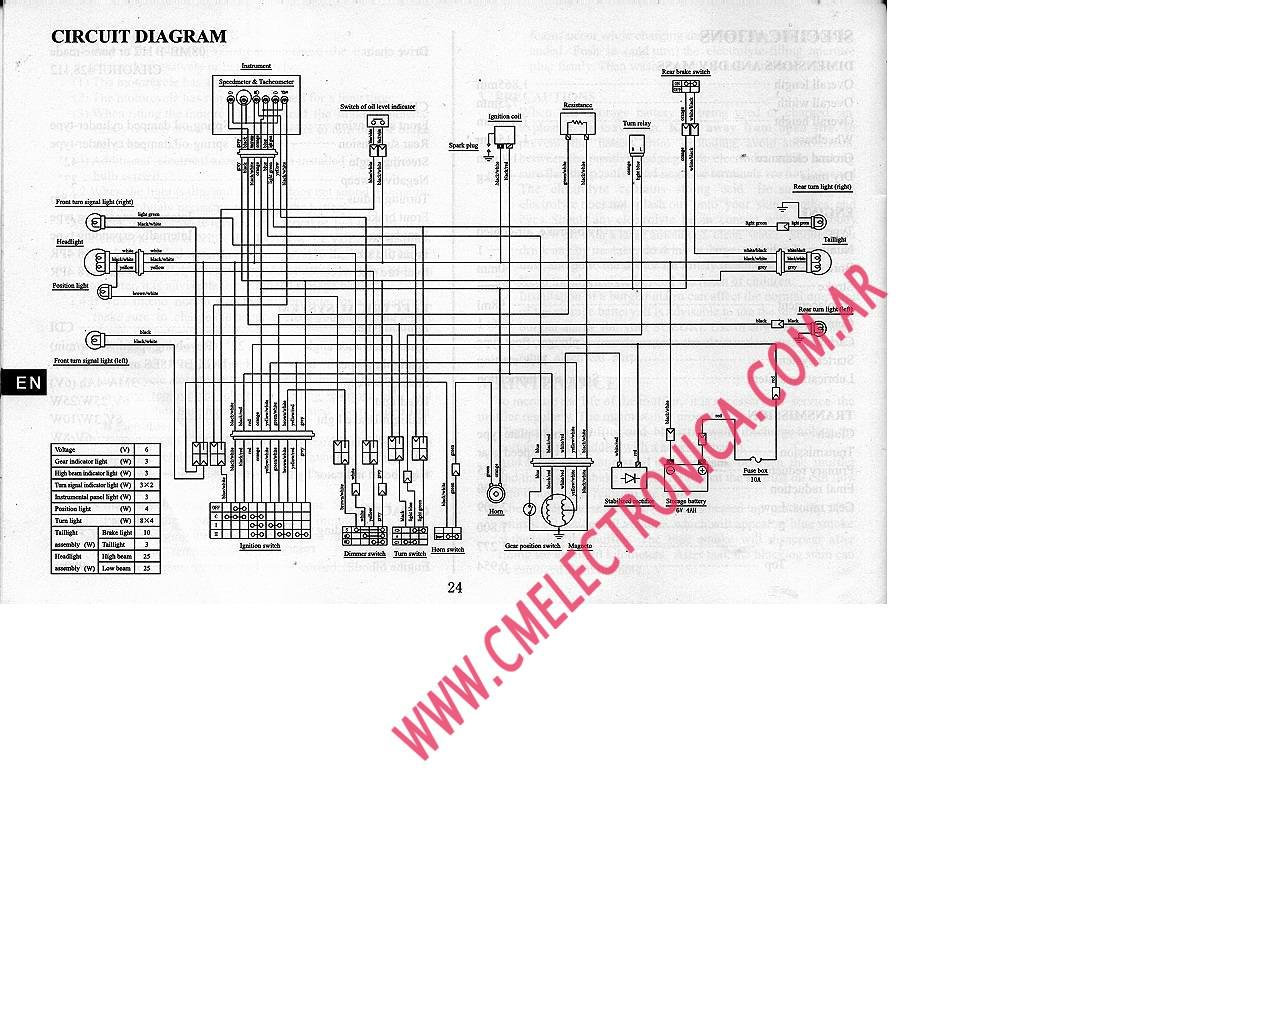 Suzuki Ax100 Wiring Diagram - Schematics Wiring Diagrams •